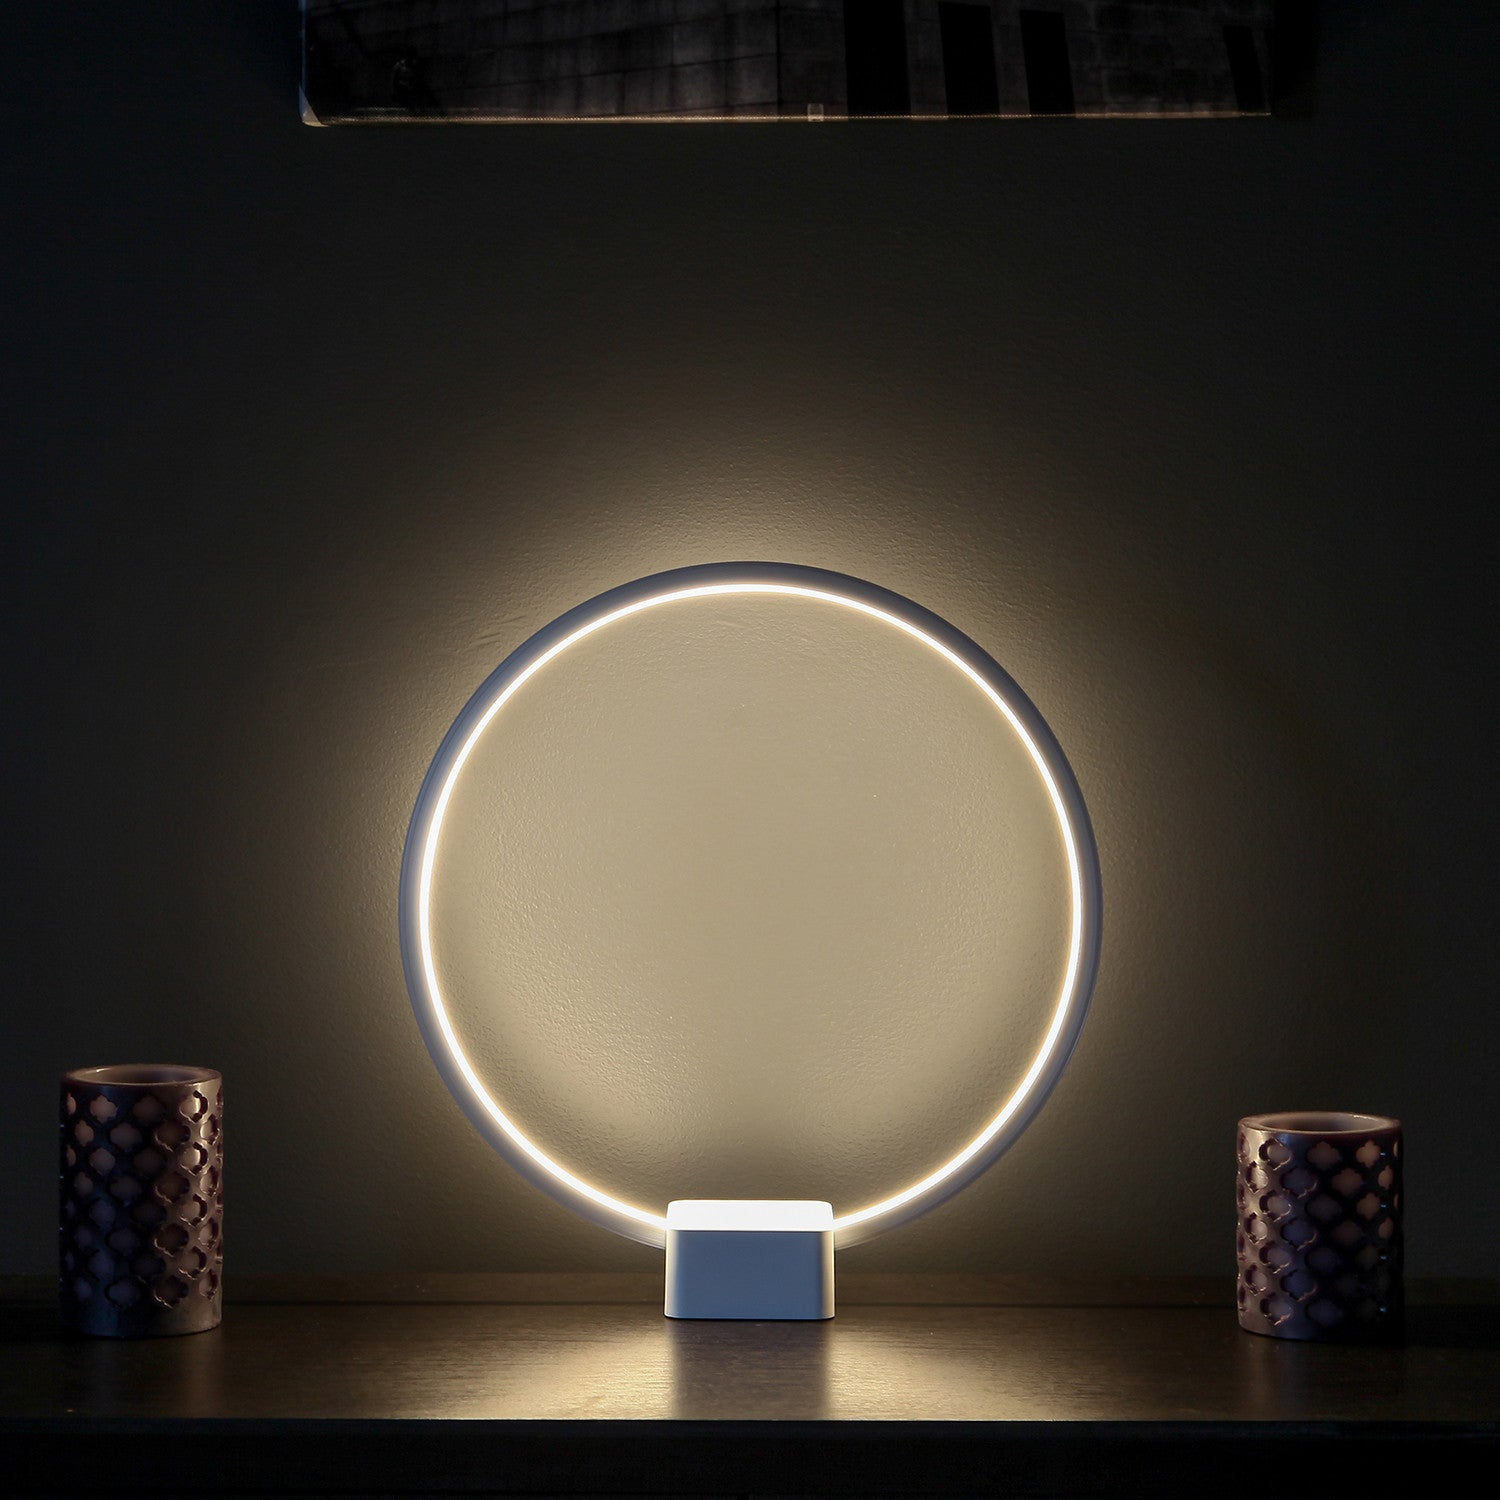 brightech store circle led table lamp u2013 bright orb of light with builtin dimmer brings scifi ambiance to spaces u2013 12 watts u2013 white color